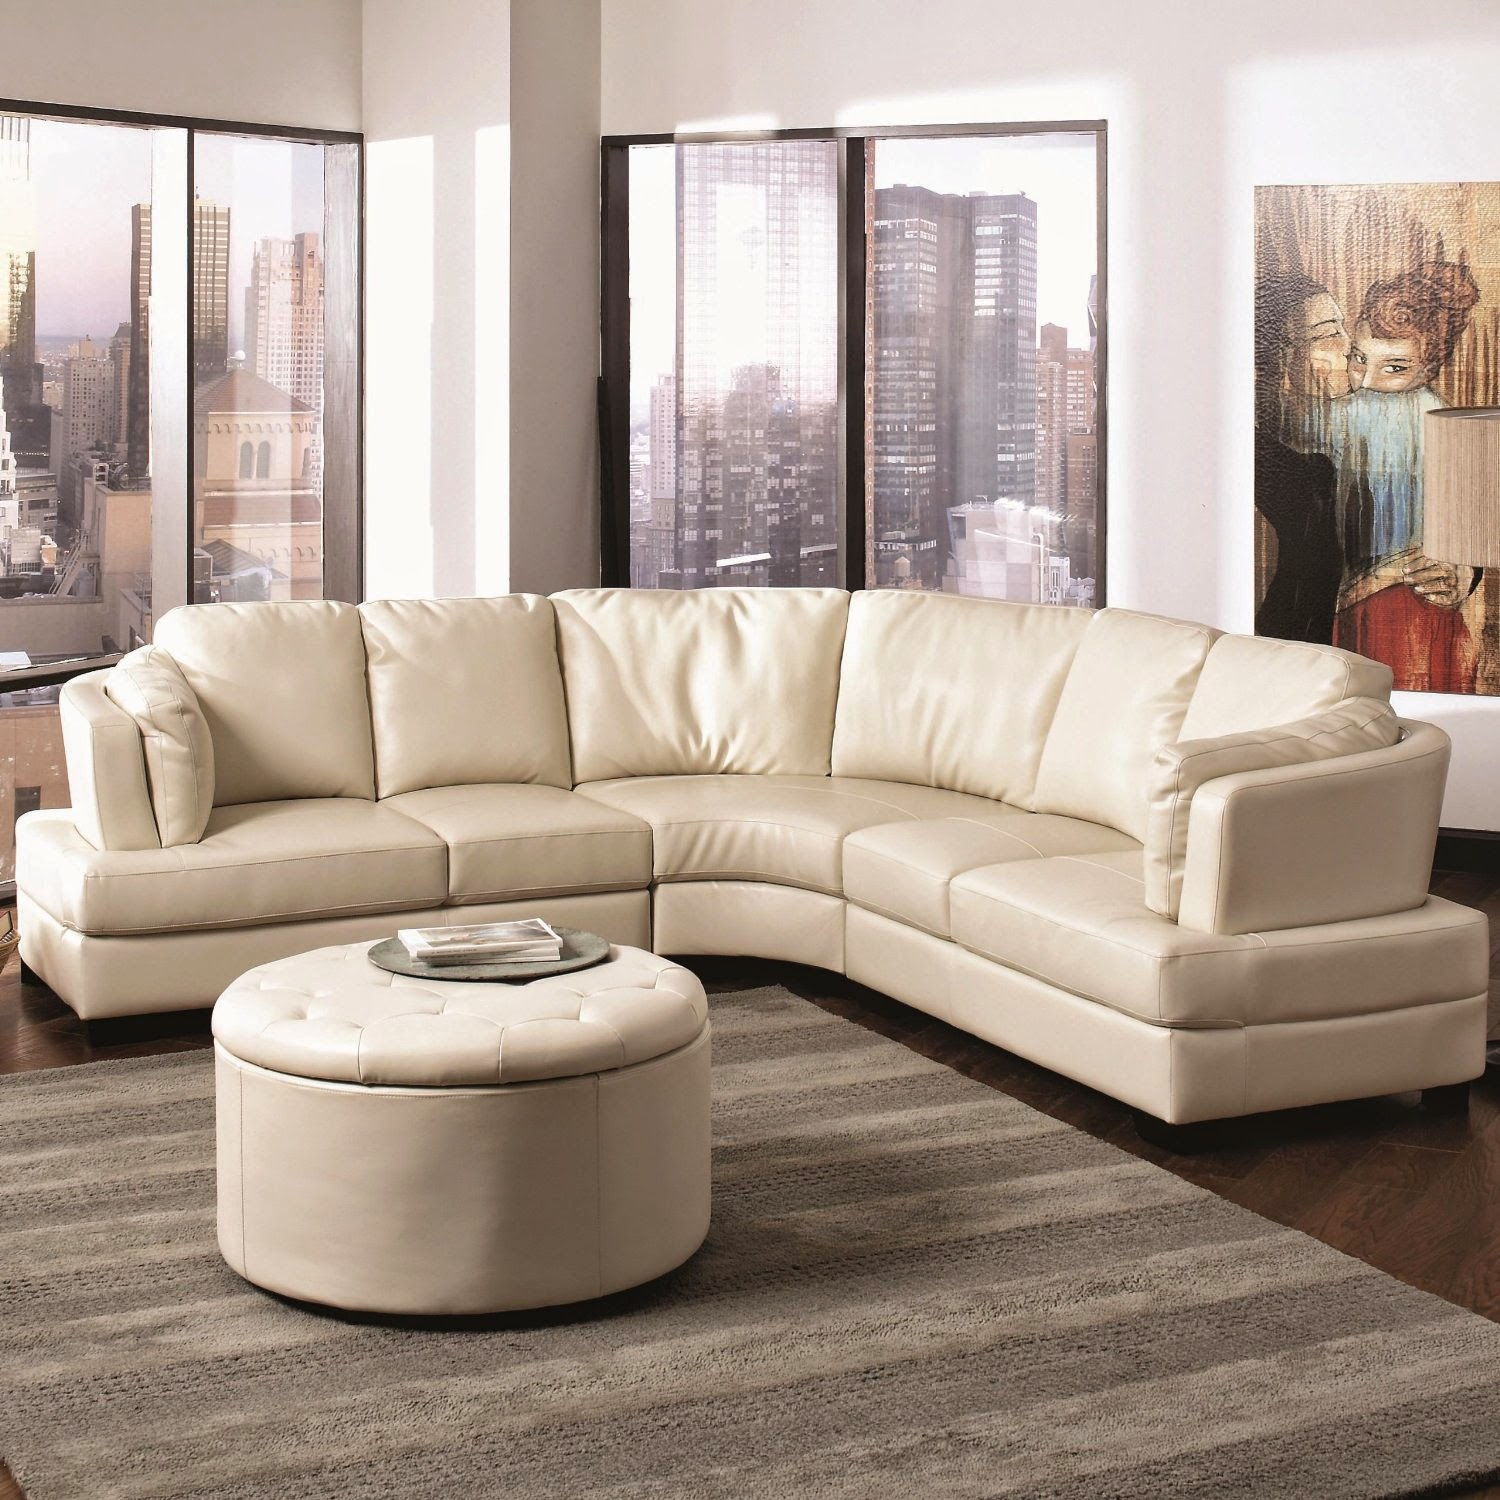 Leather Round Sofas Manufacturers Ashley Furniture Curved Sofa Website Reviews For Sale